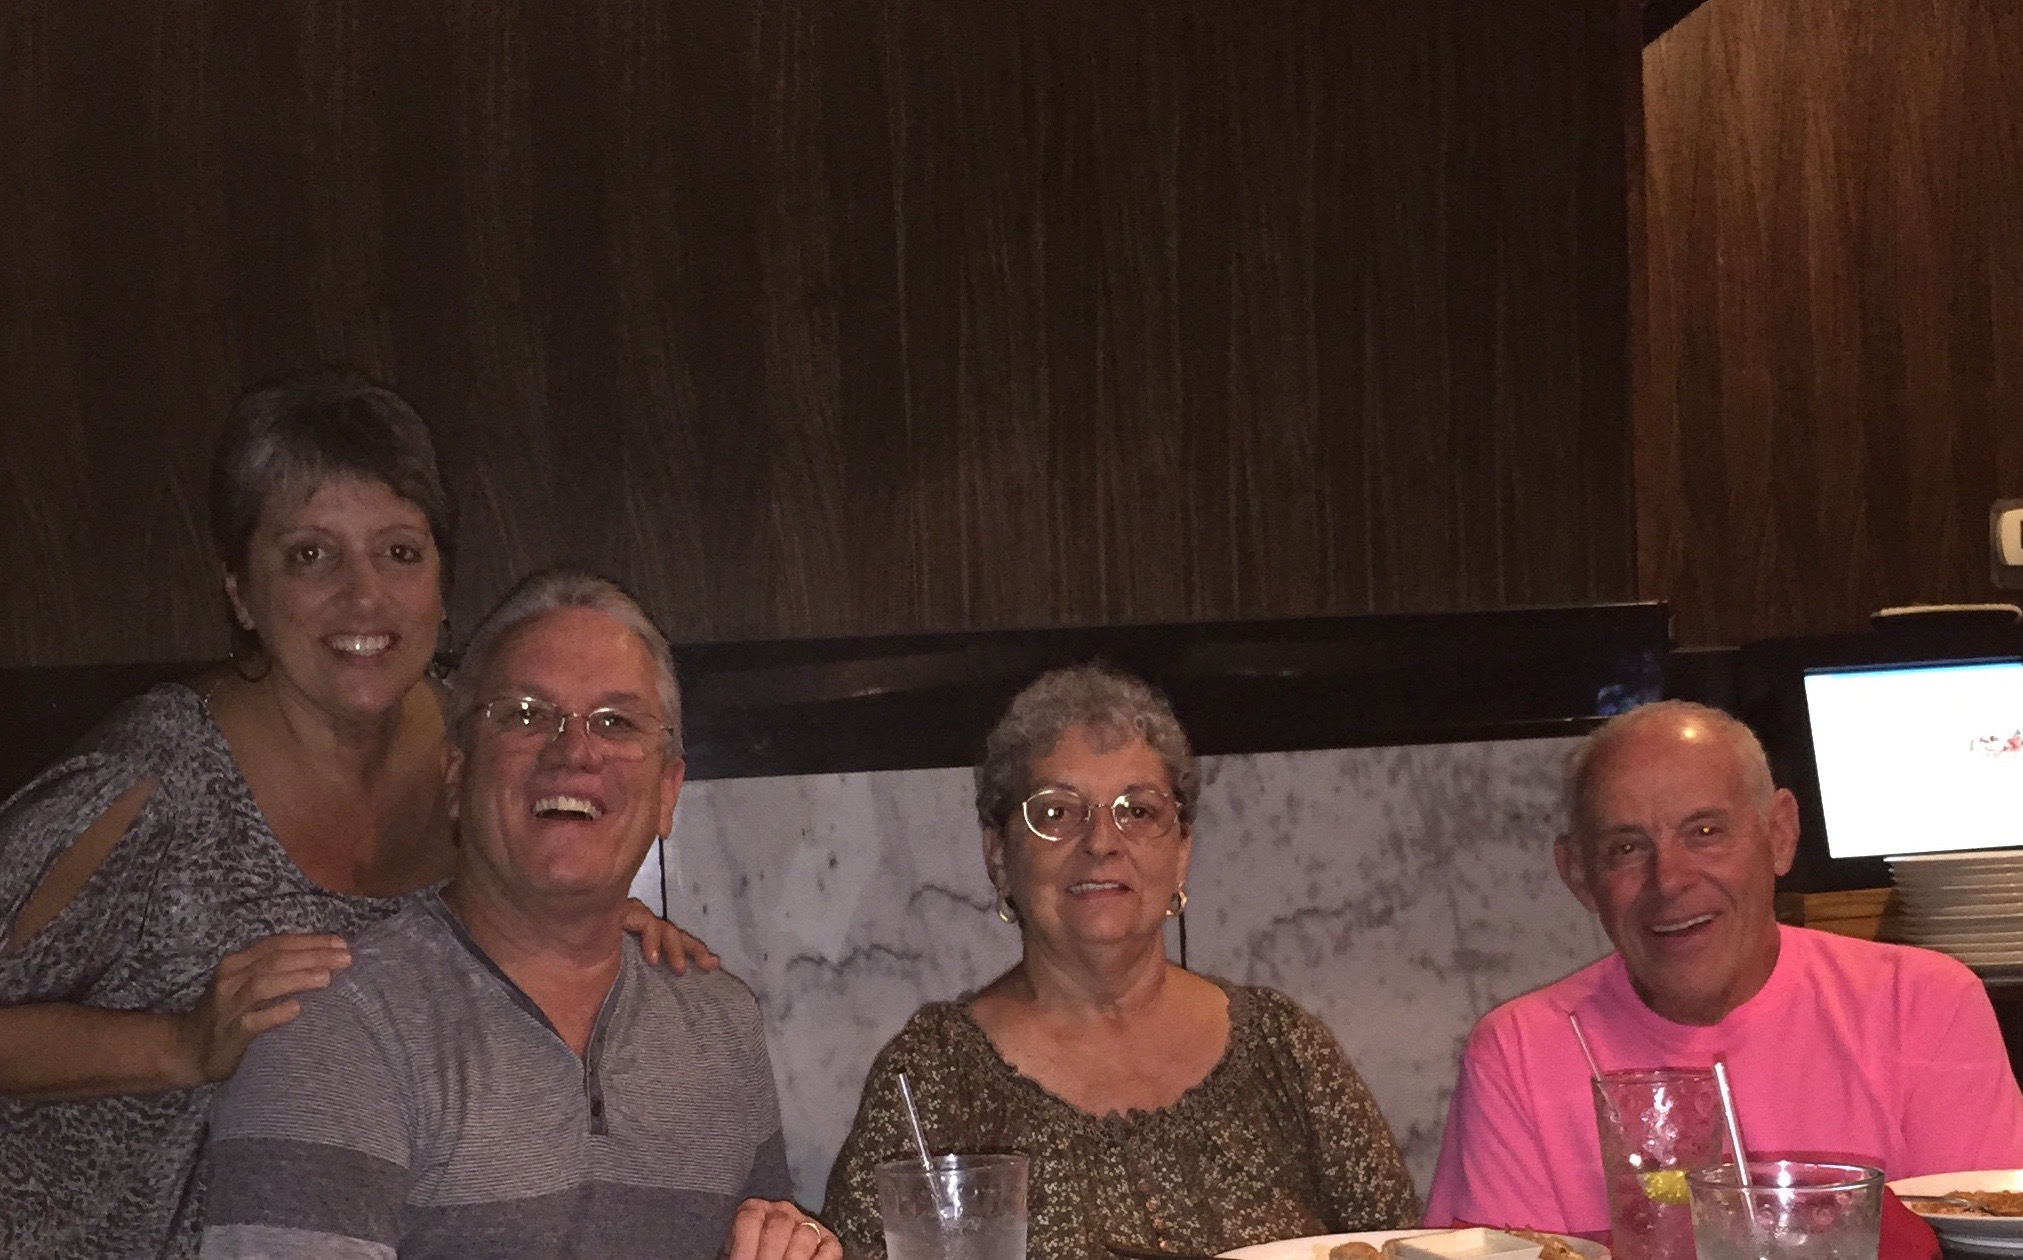 Enjoying dinner out together! Miss you, Mom!!!